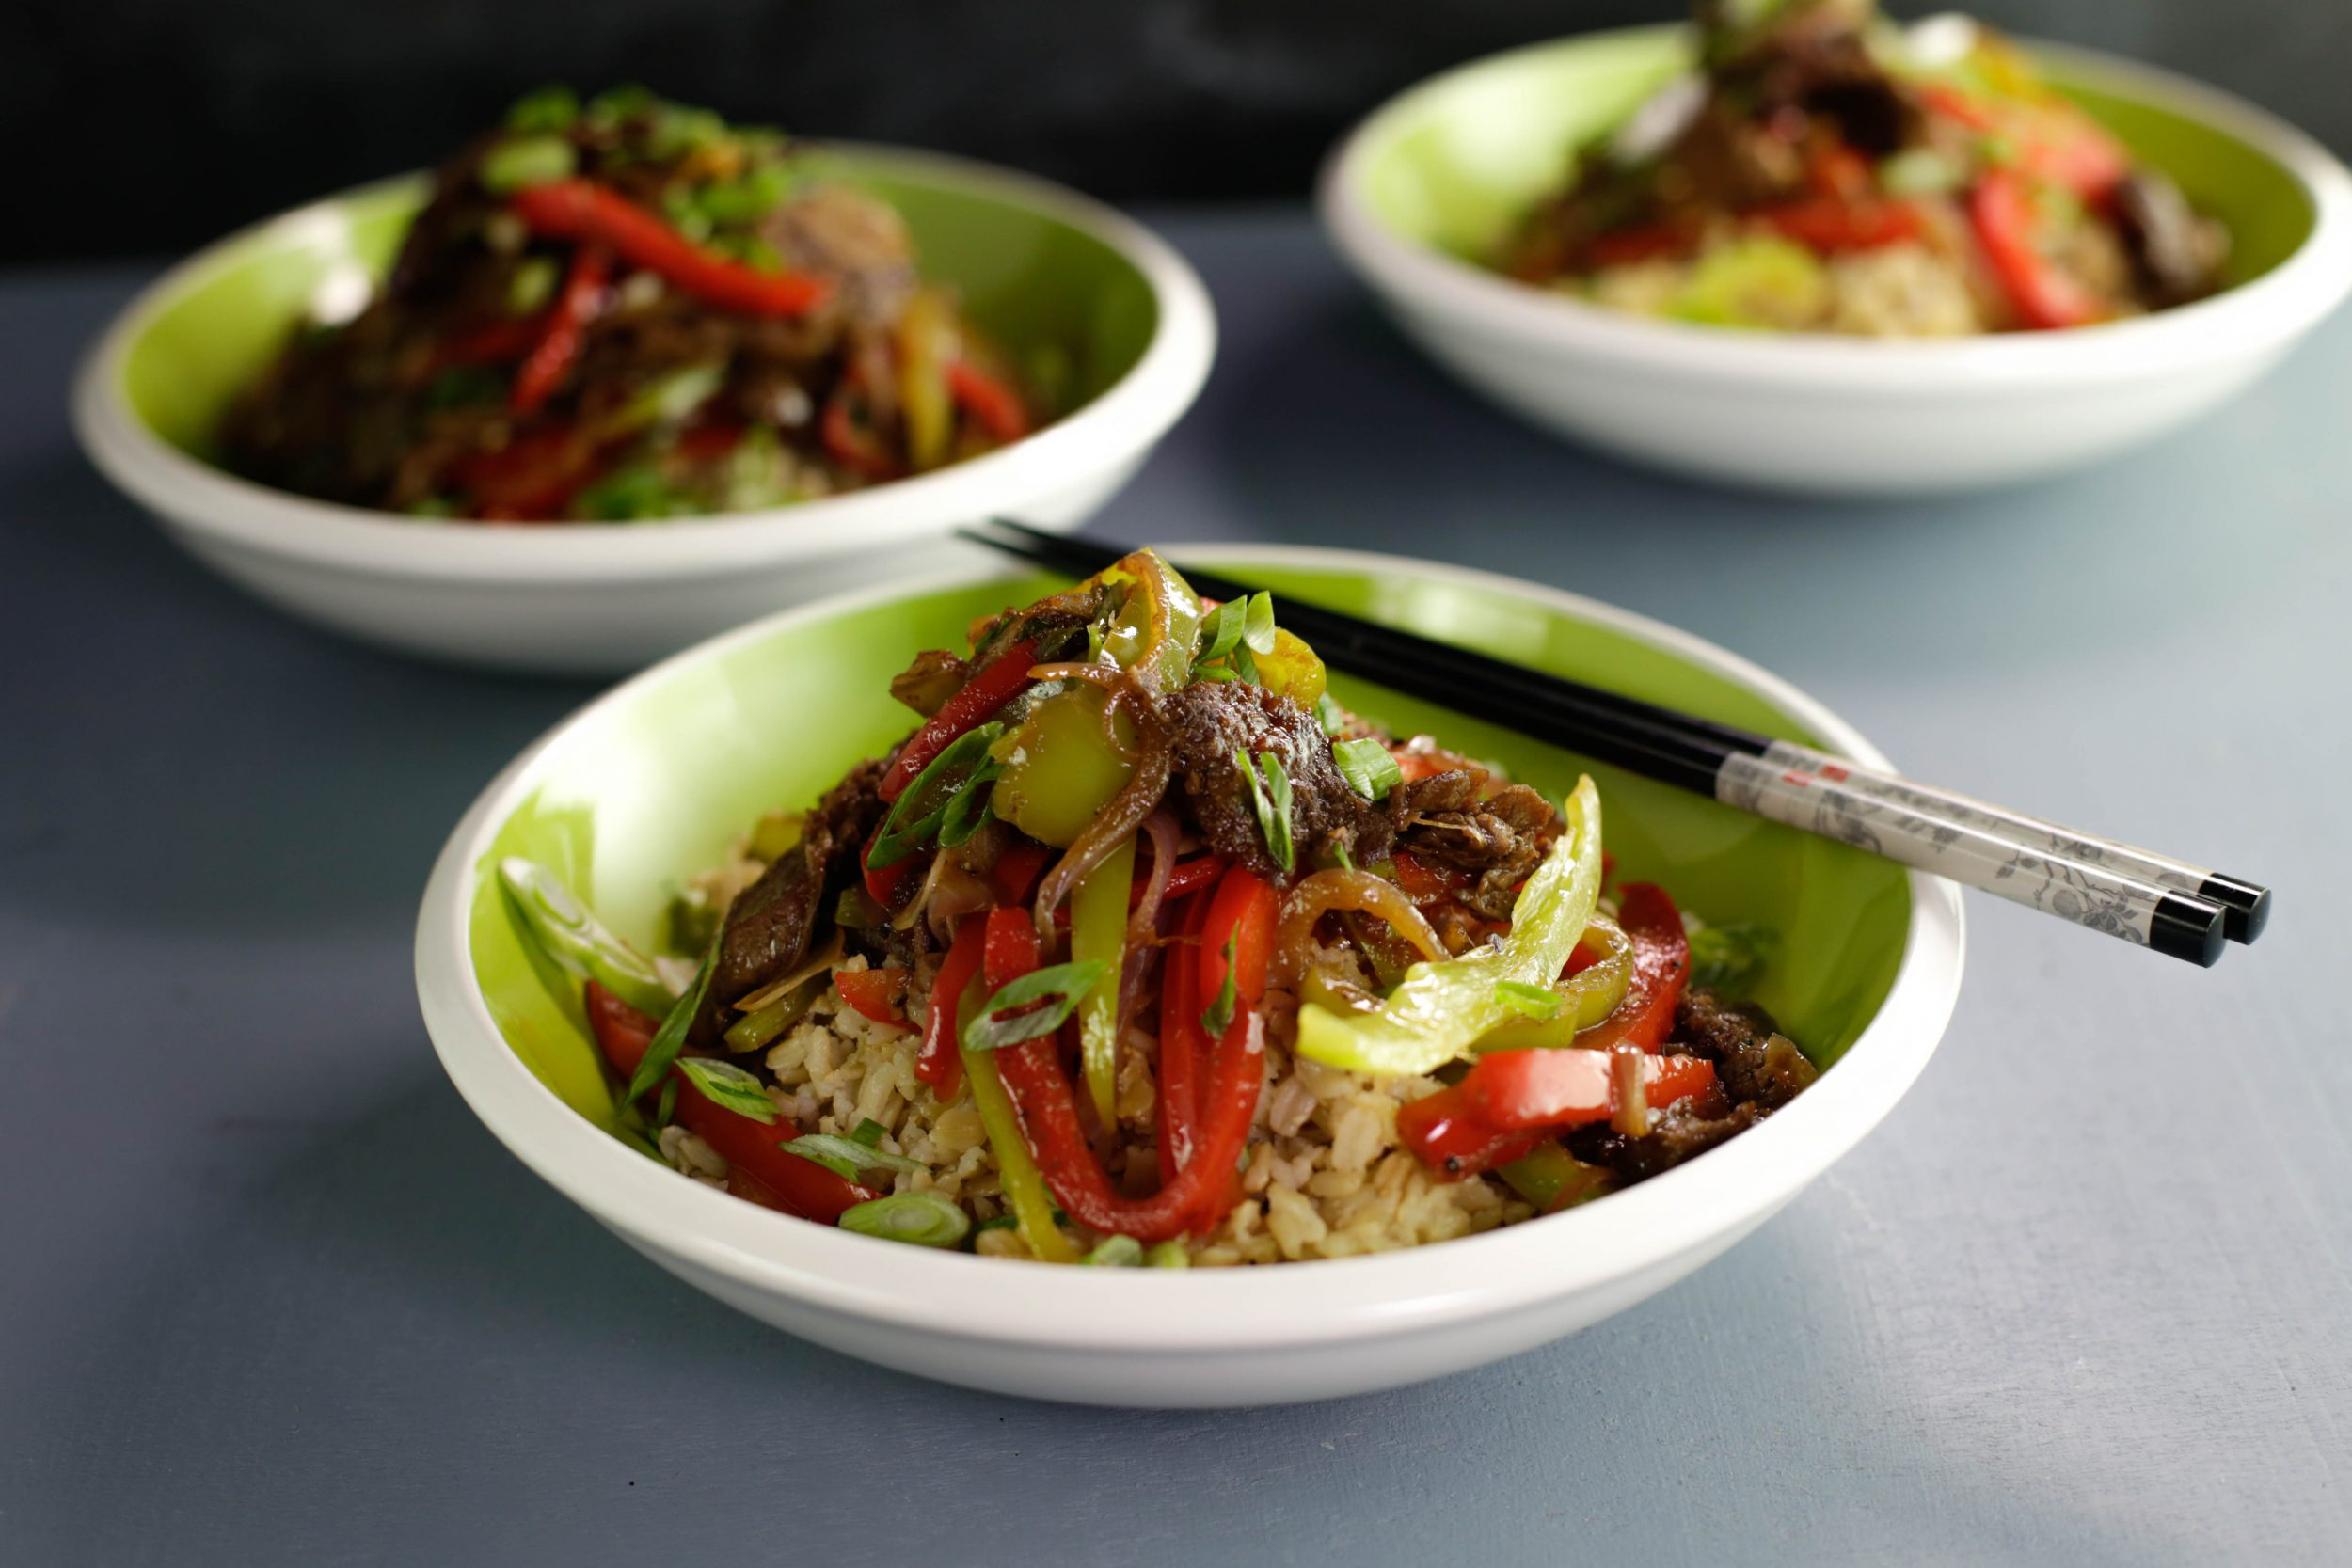 Barbecued Beef and Pepper Stir-Fry